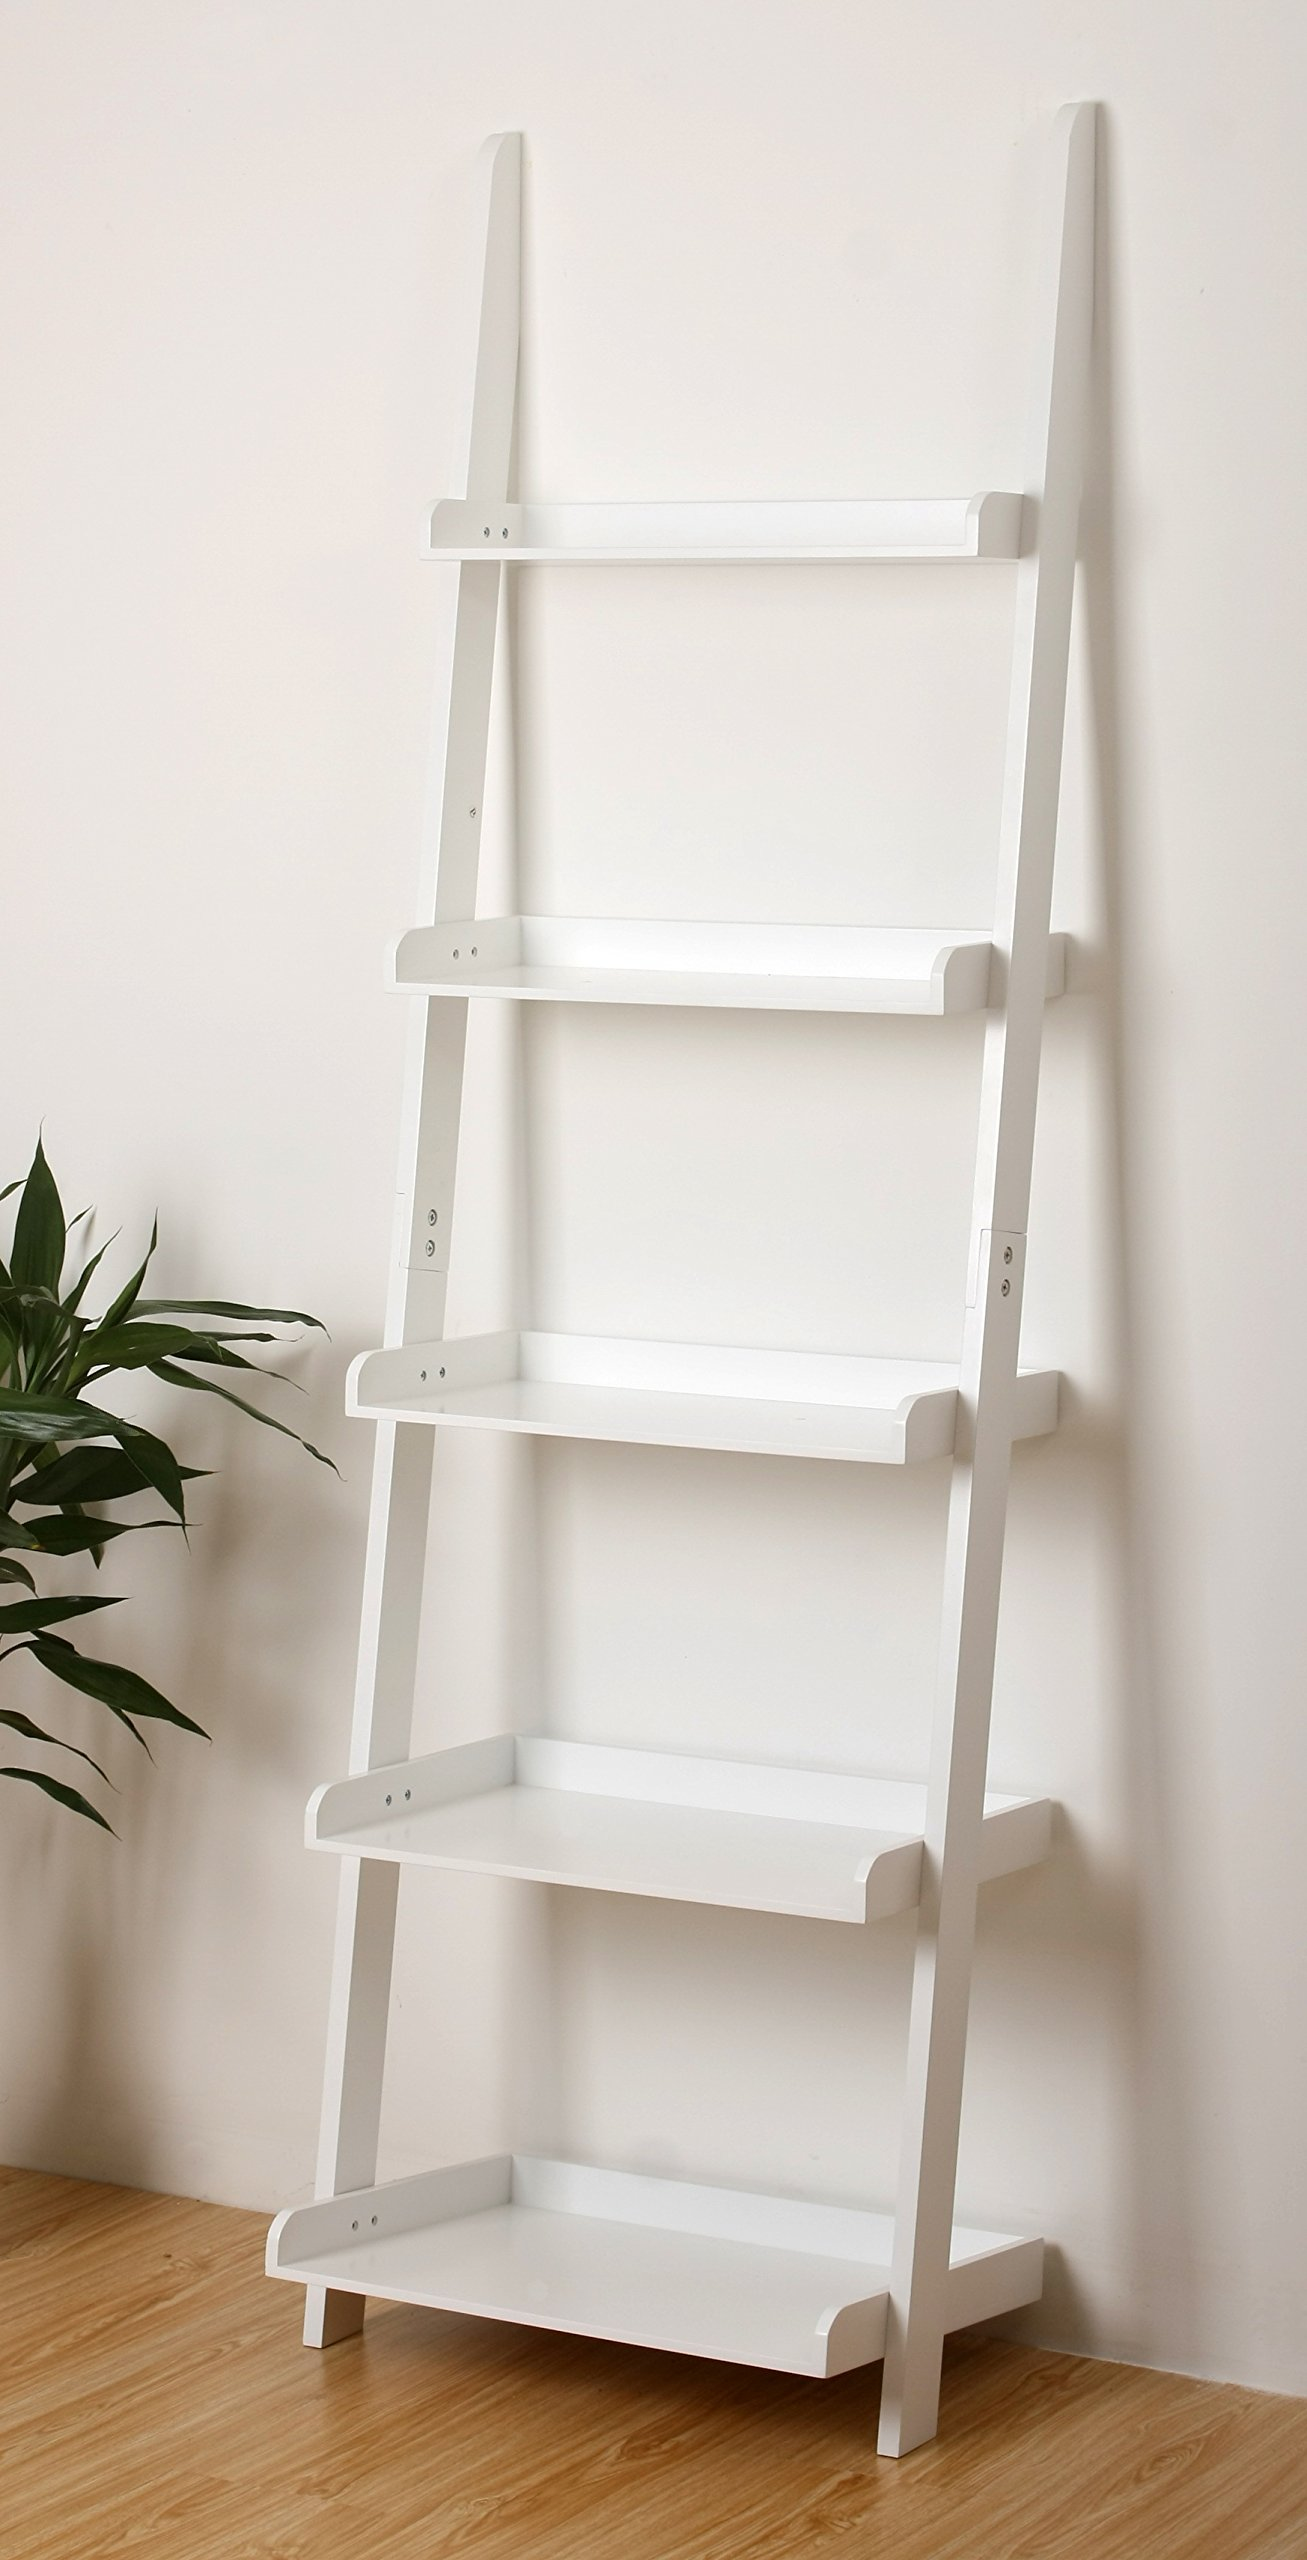 eHemco 5 Tier Leaning Ladder Book Shelf in White Finish 21-5/8''W X70''H by eHemco